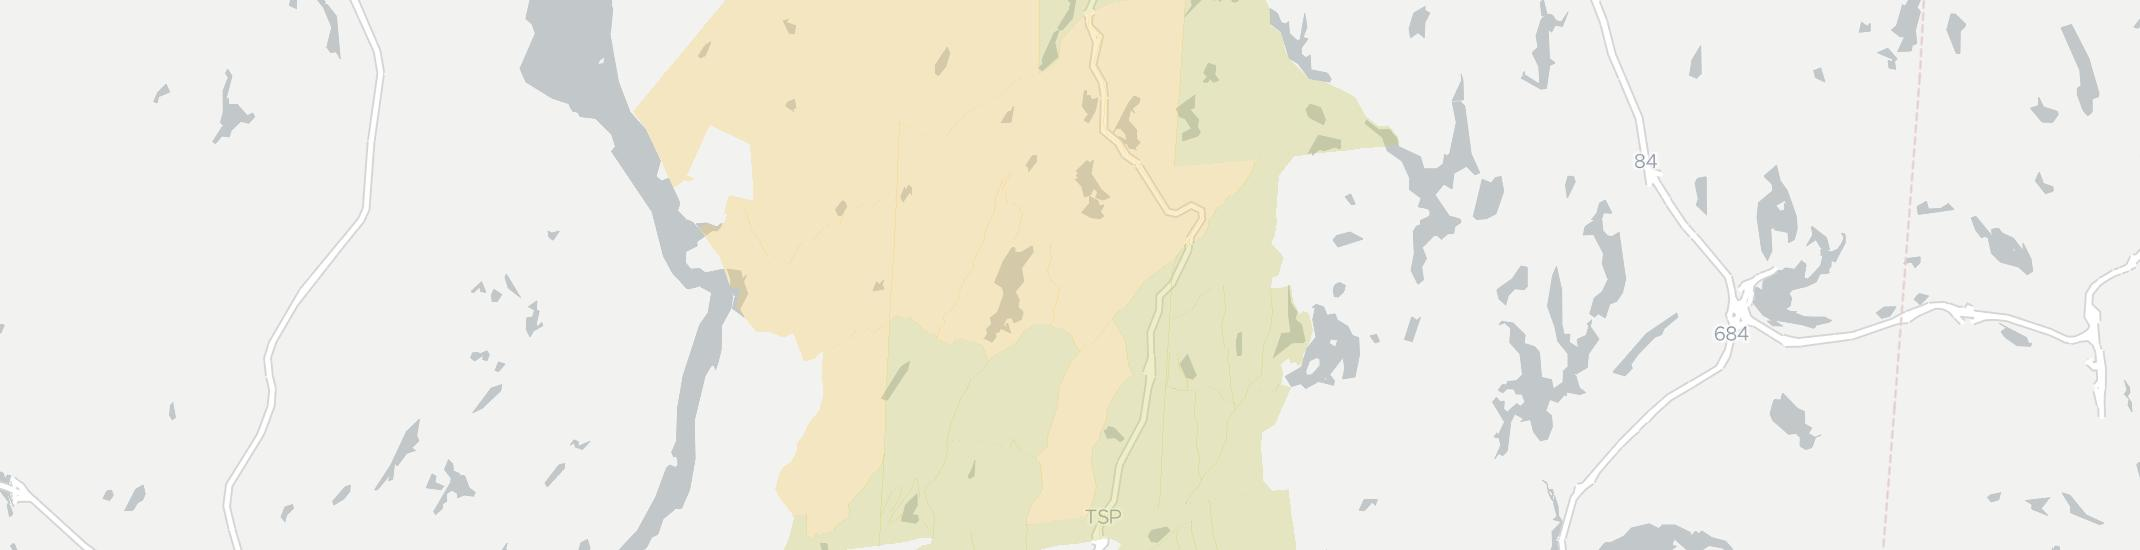 Putnam Valley Internet Competition Map. Click for interactive map.